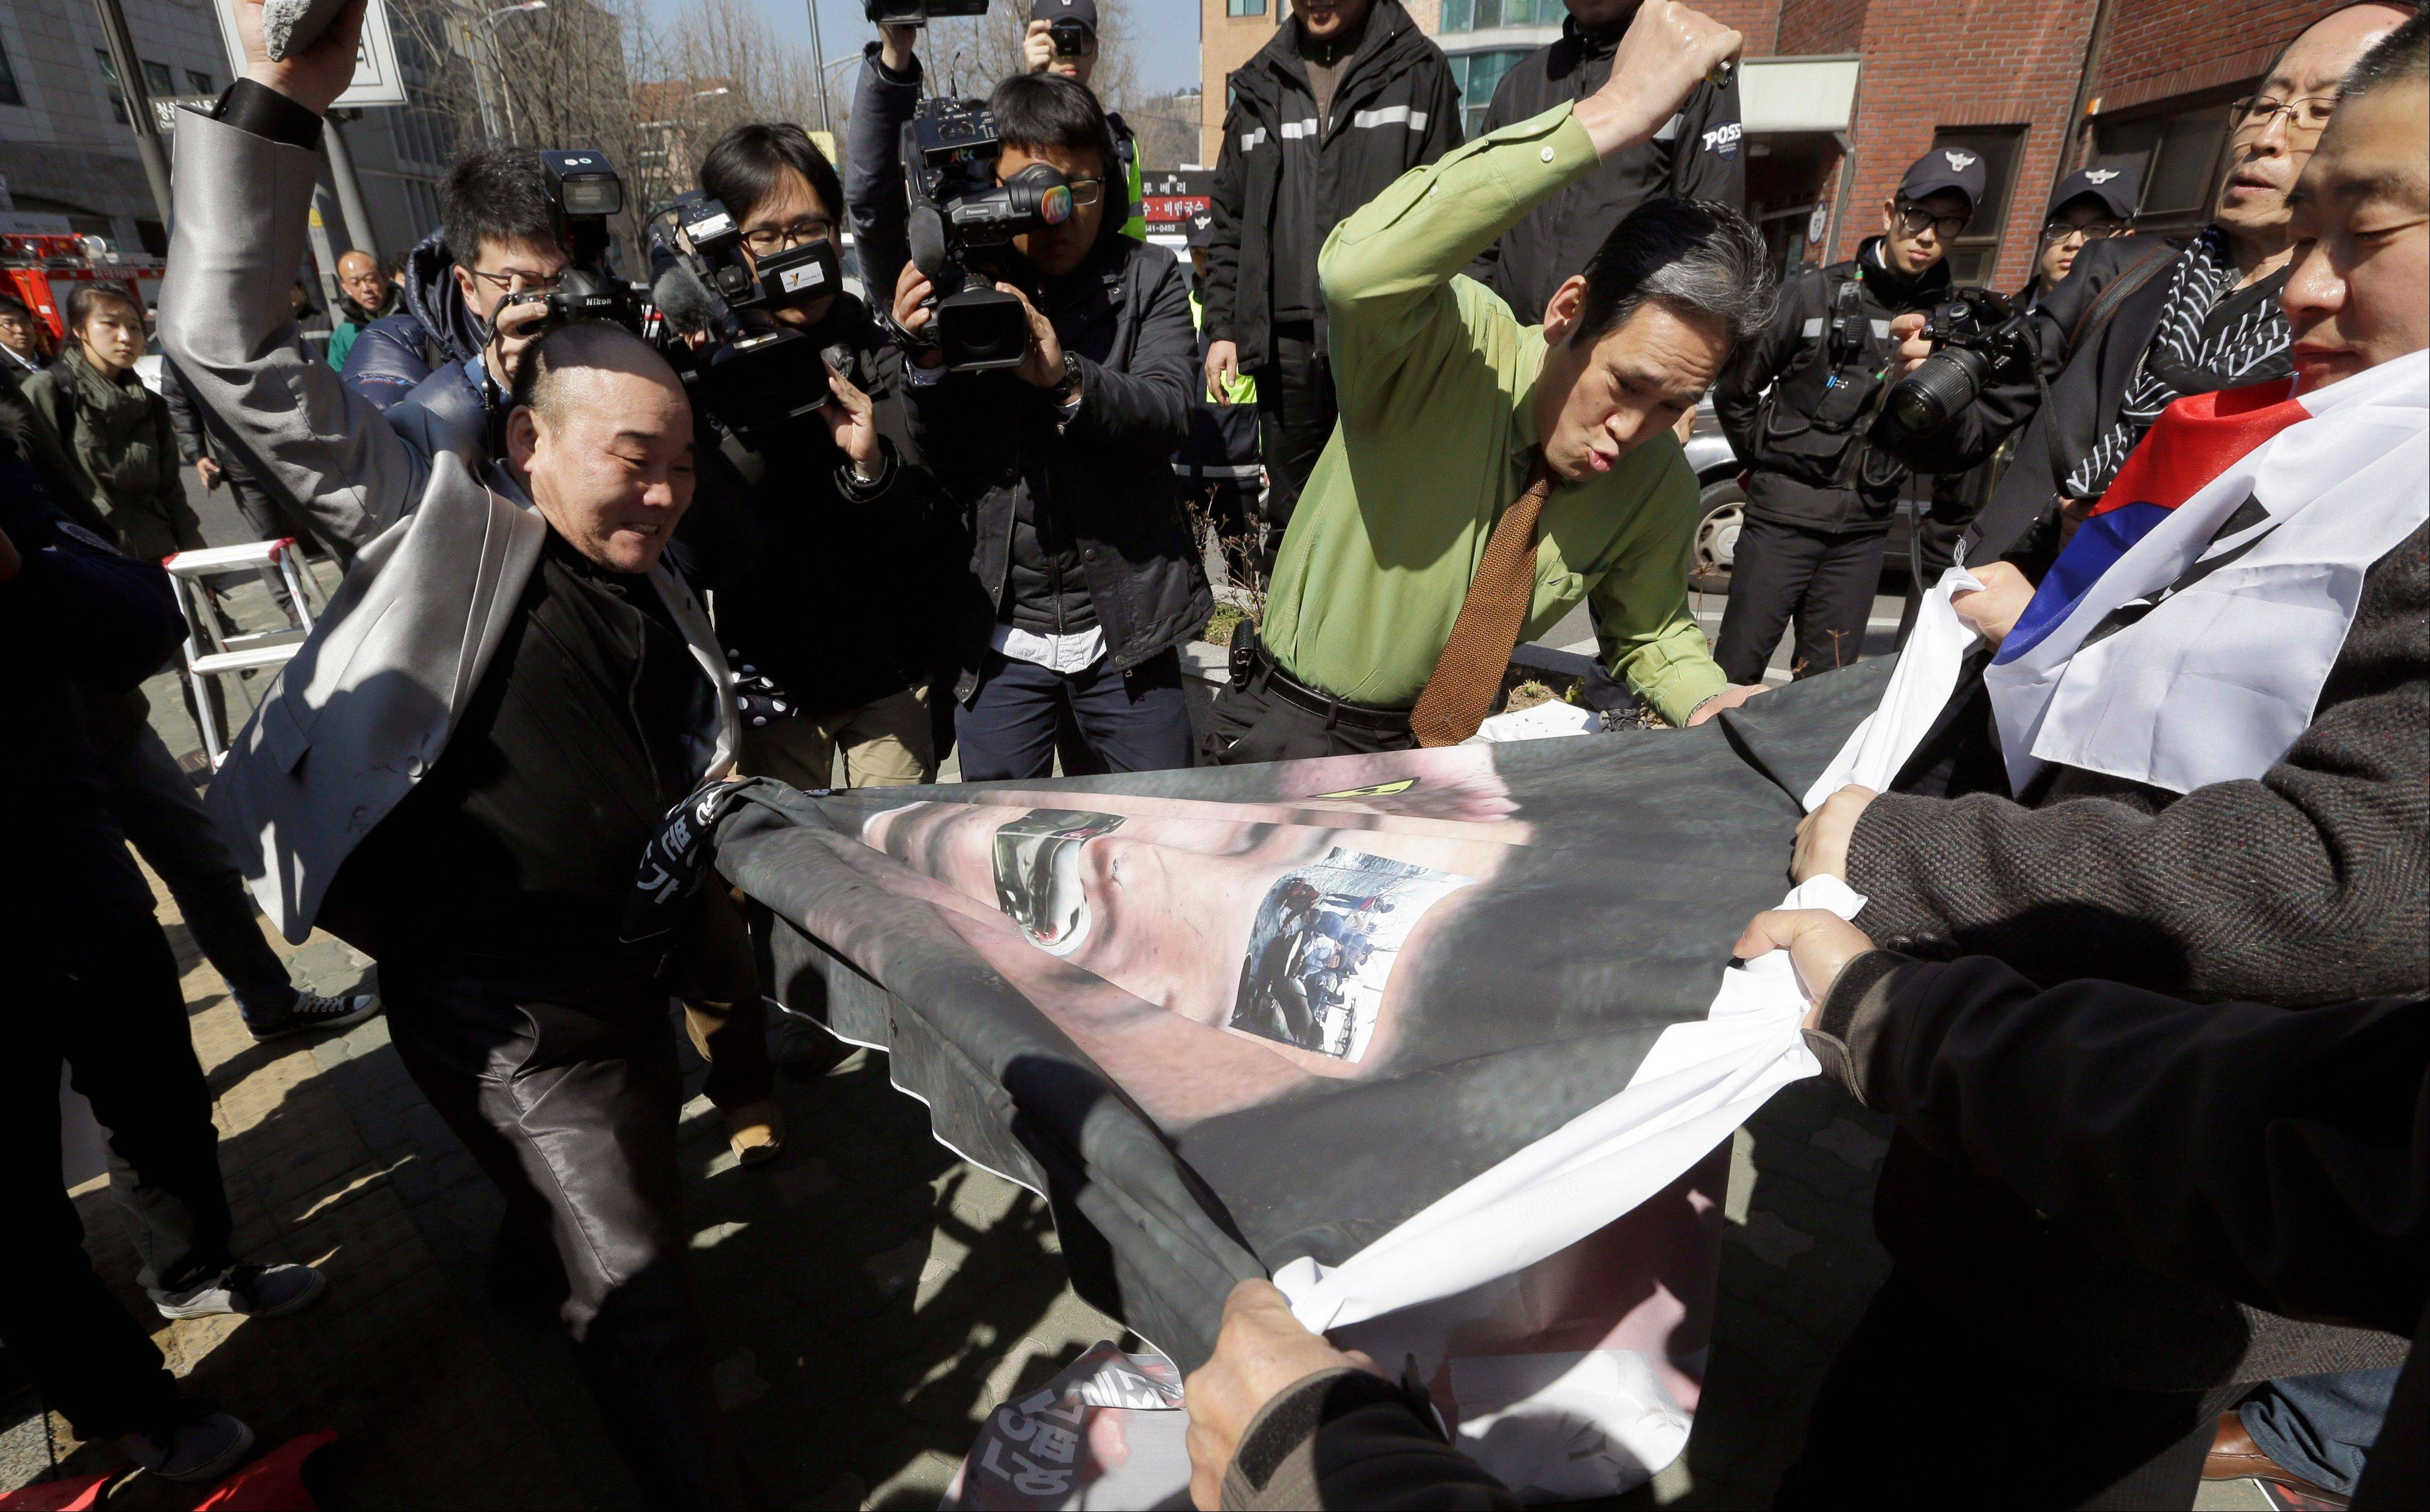 South Korean protesters hit a huge banner with a picture of North Korean leader Kim Jong Un during a rally denouncing North Korea's recent threat and supporting South Korean President Park Geun-hye near the presidential Blue House in Seoul, South Korea, Monday. South Korea and the U.S. began annual military drills Monday despite North Korean threats to respond by voiding the armistice that ended the Korean War and launching a nuclear attack on the U.S.